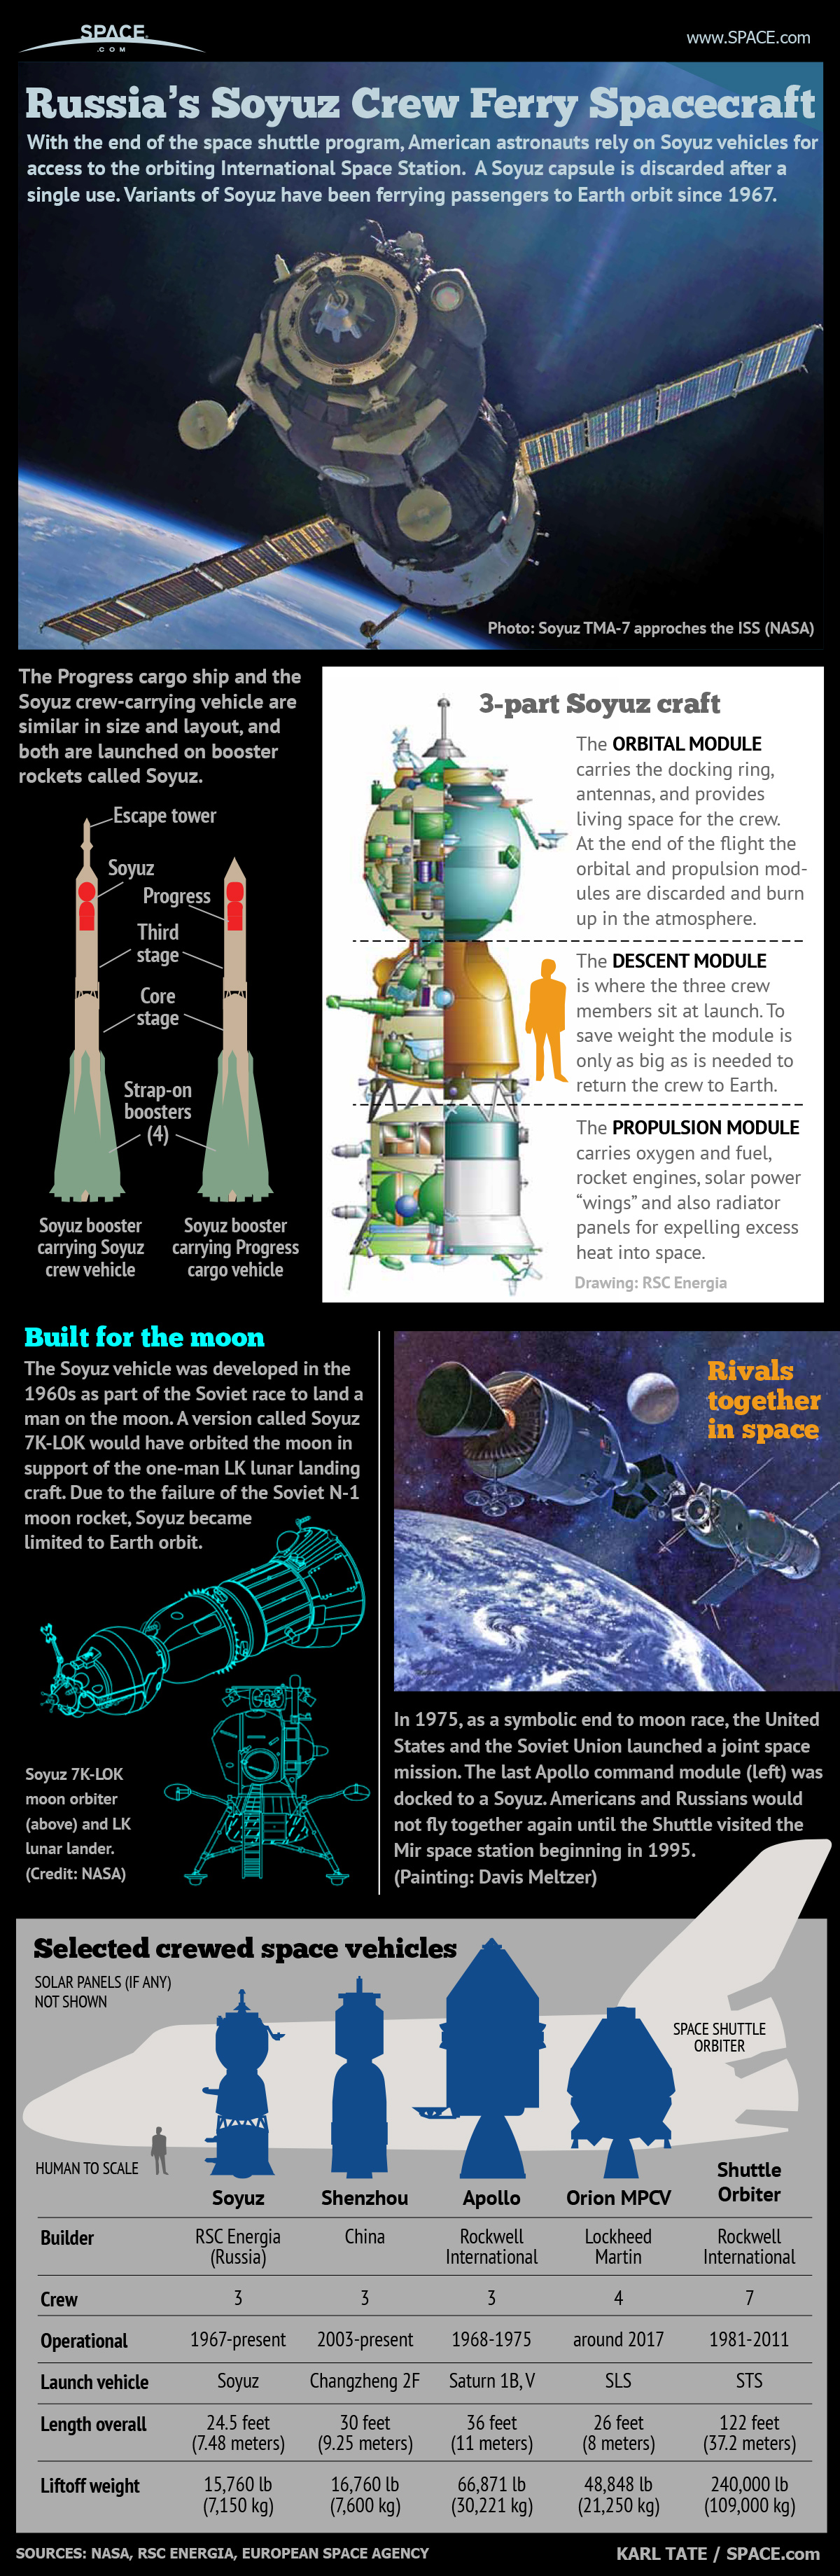 Russia's Manned Soyuz Space Capsule Explained (Infographic)